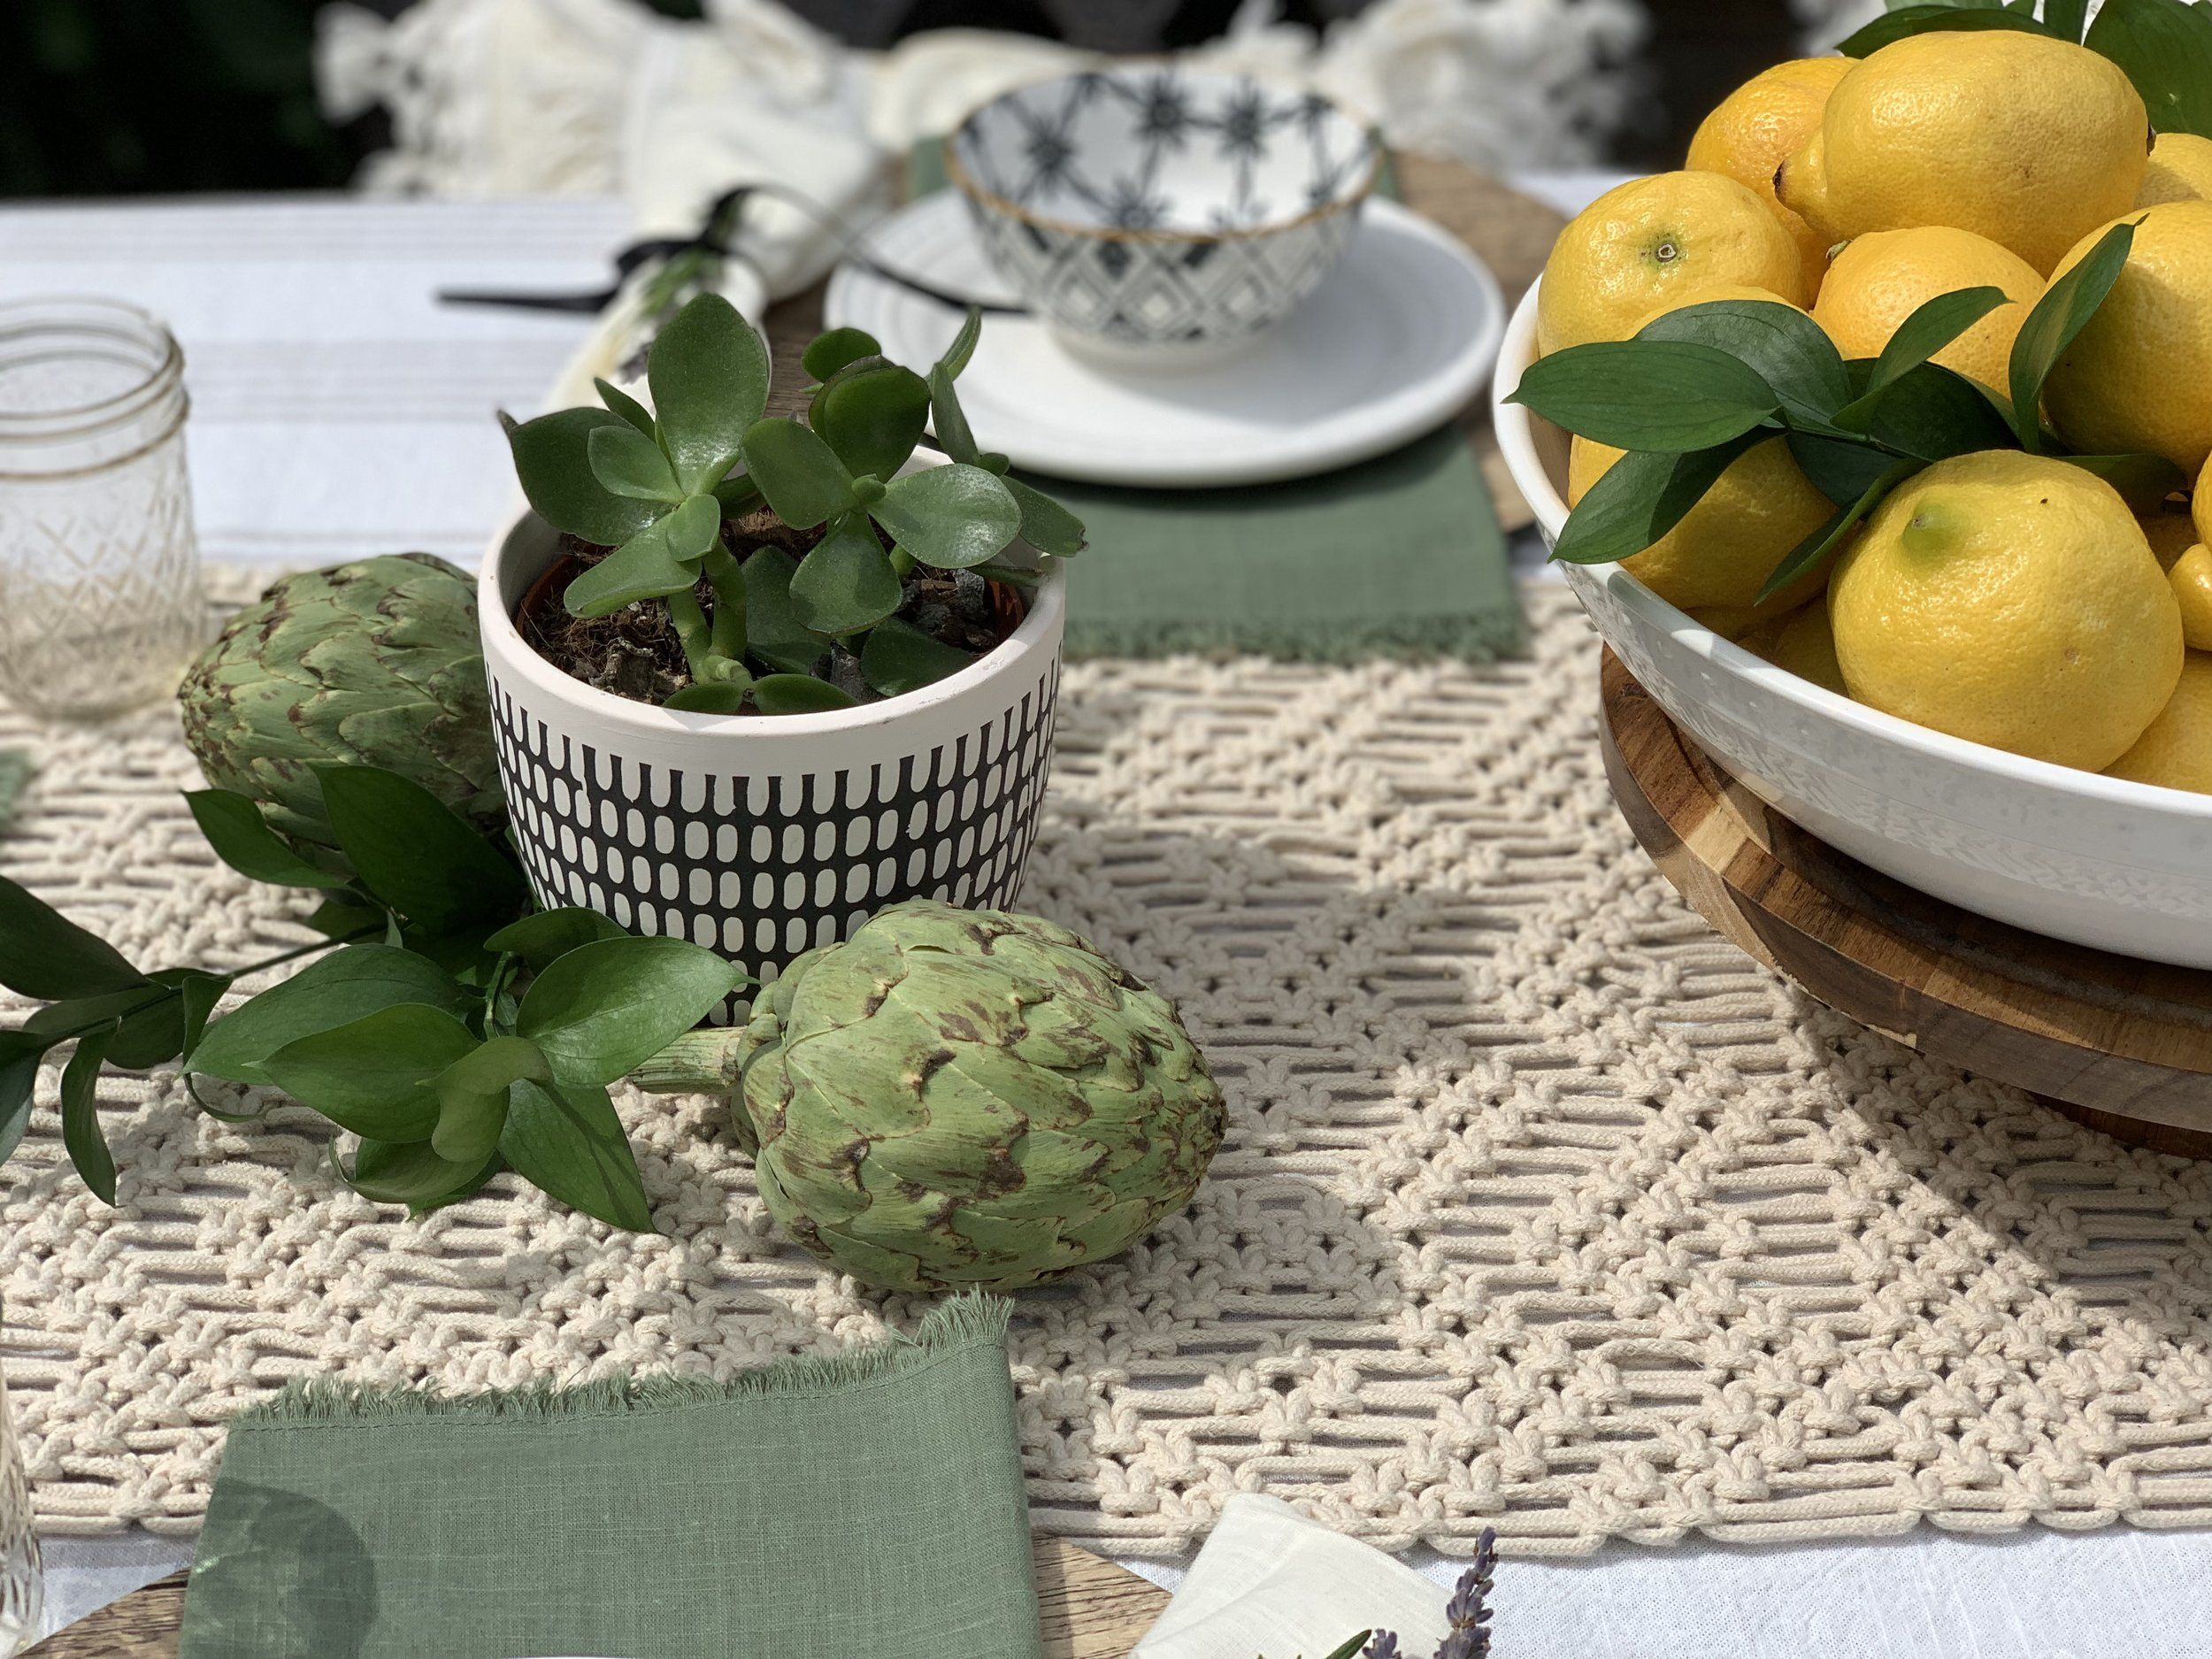 Mediterranean Tablescape design by beam&bloom with artichokes, lemons and greens